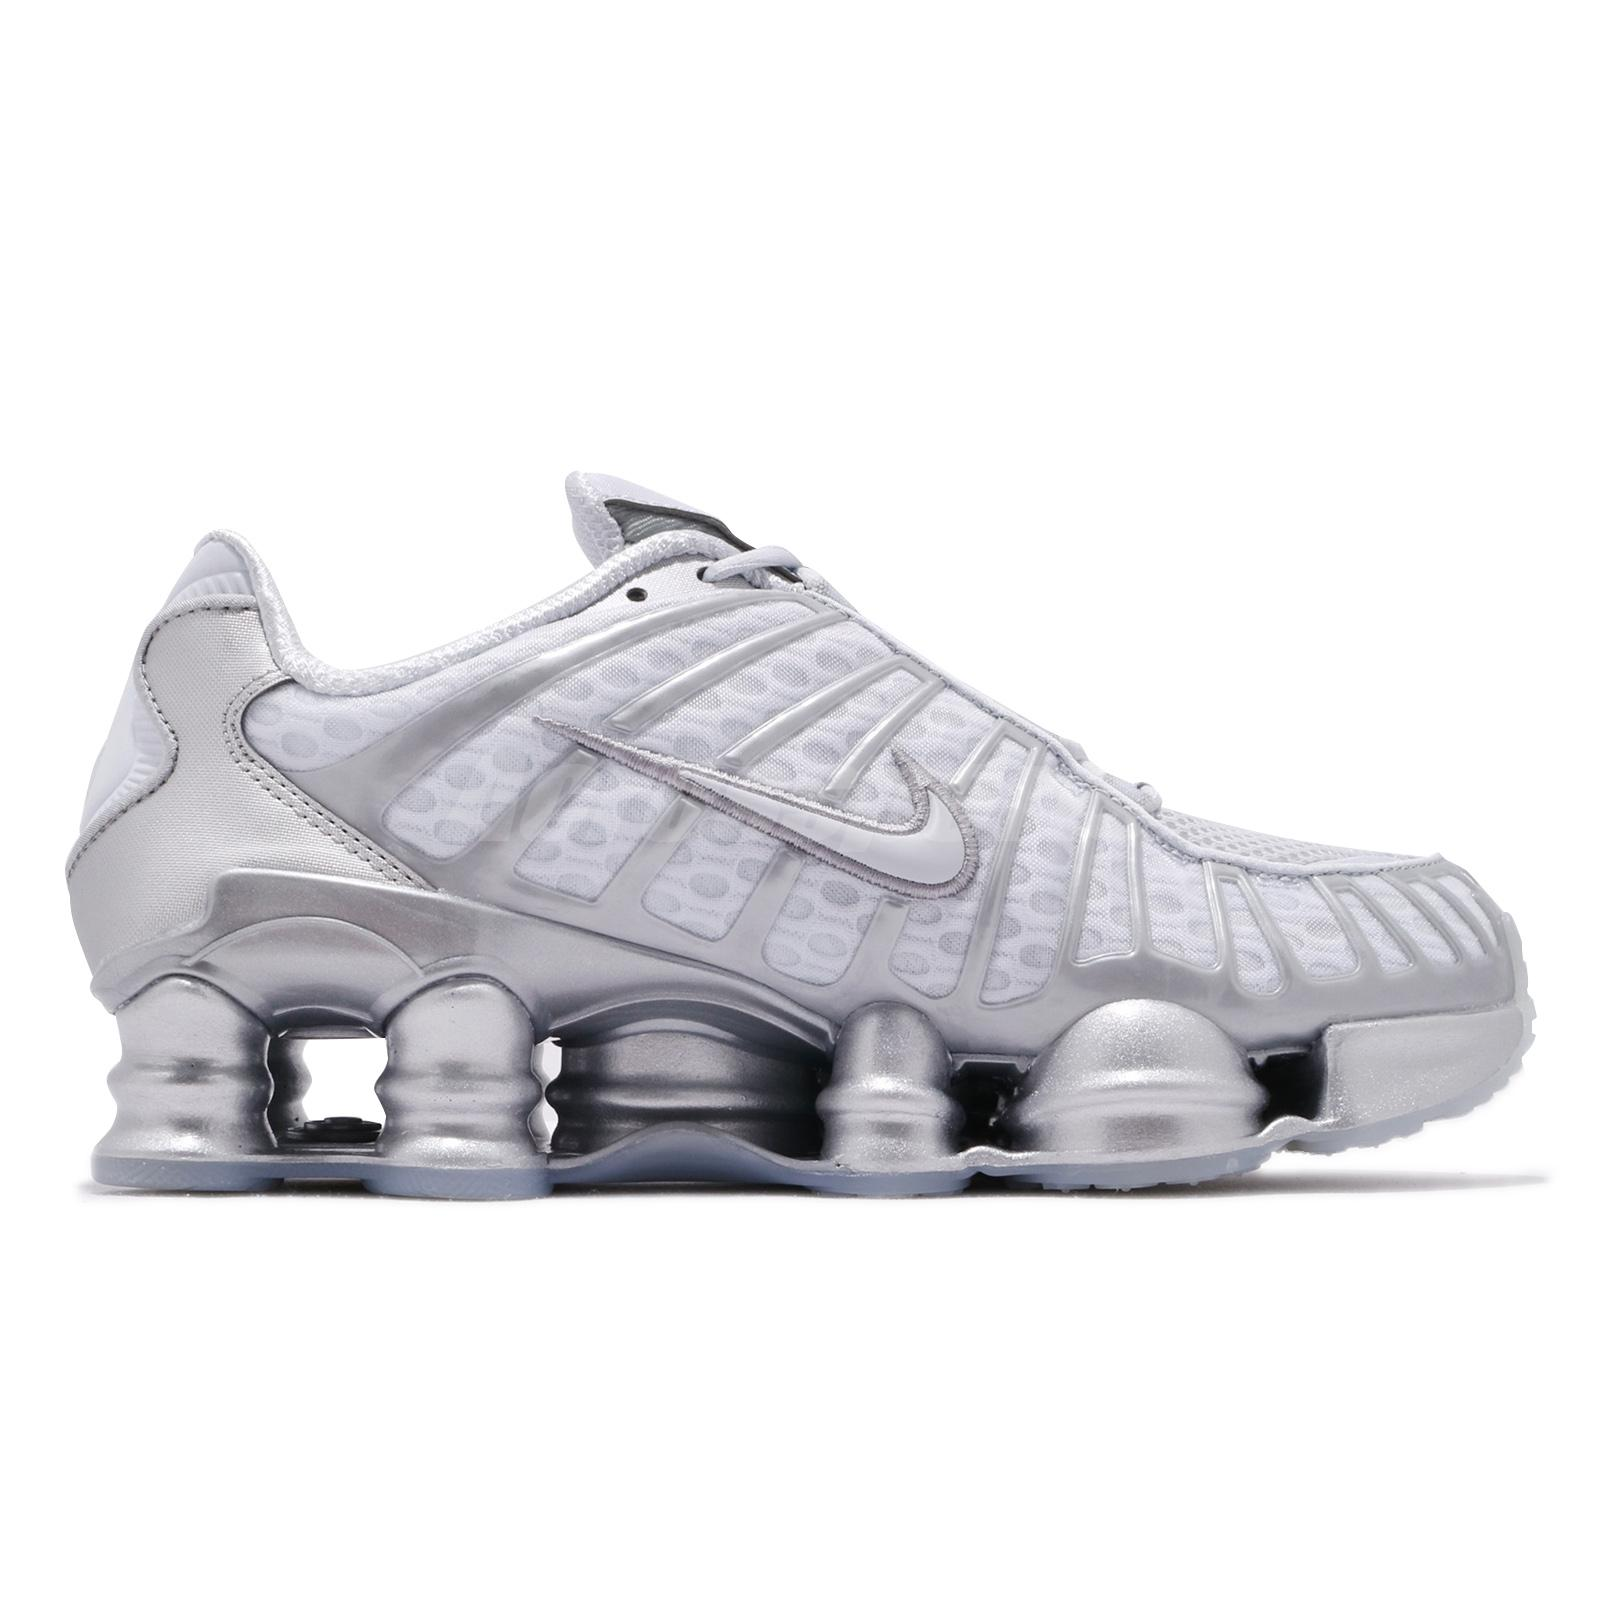 top quality hot new products cozy fresh Details about Nike Nike Shox TL Total Pure Platinum Chrome Mens Running  Shoes AV3595-003